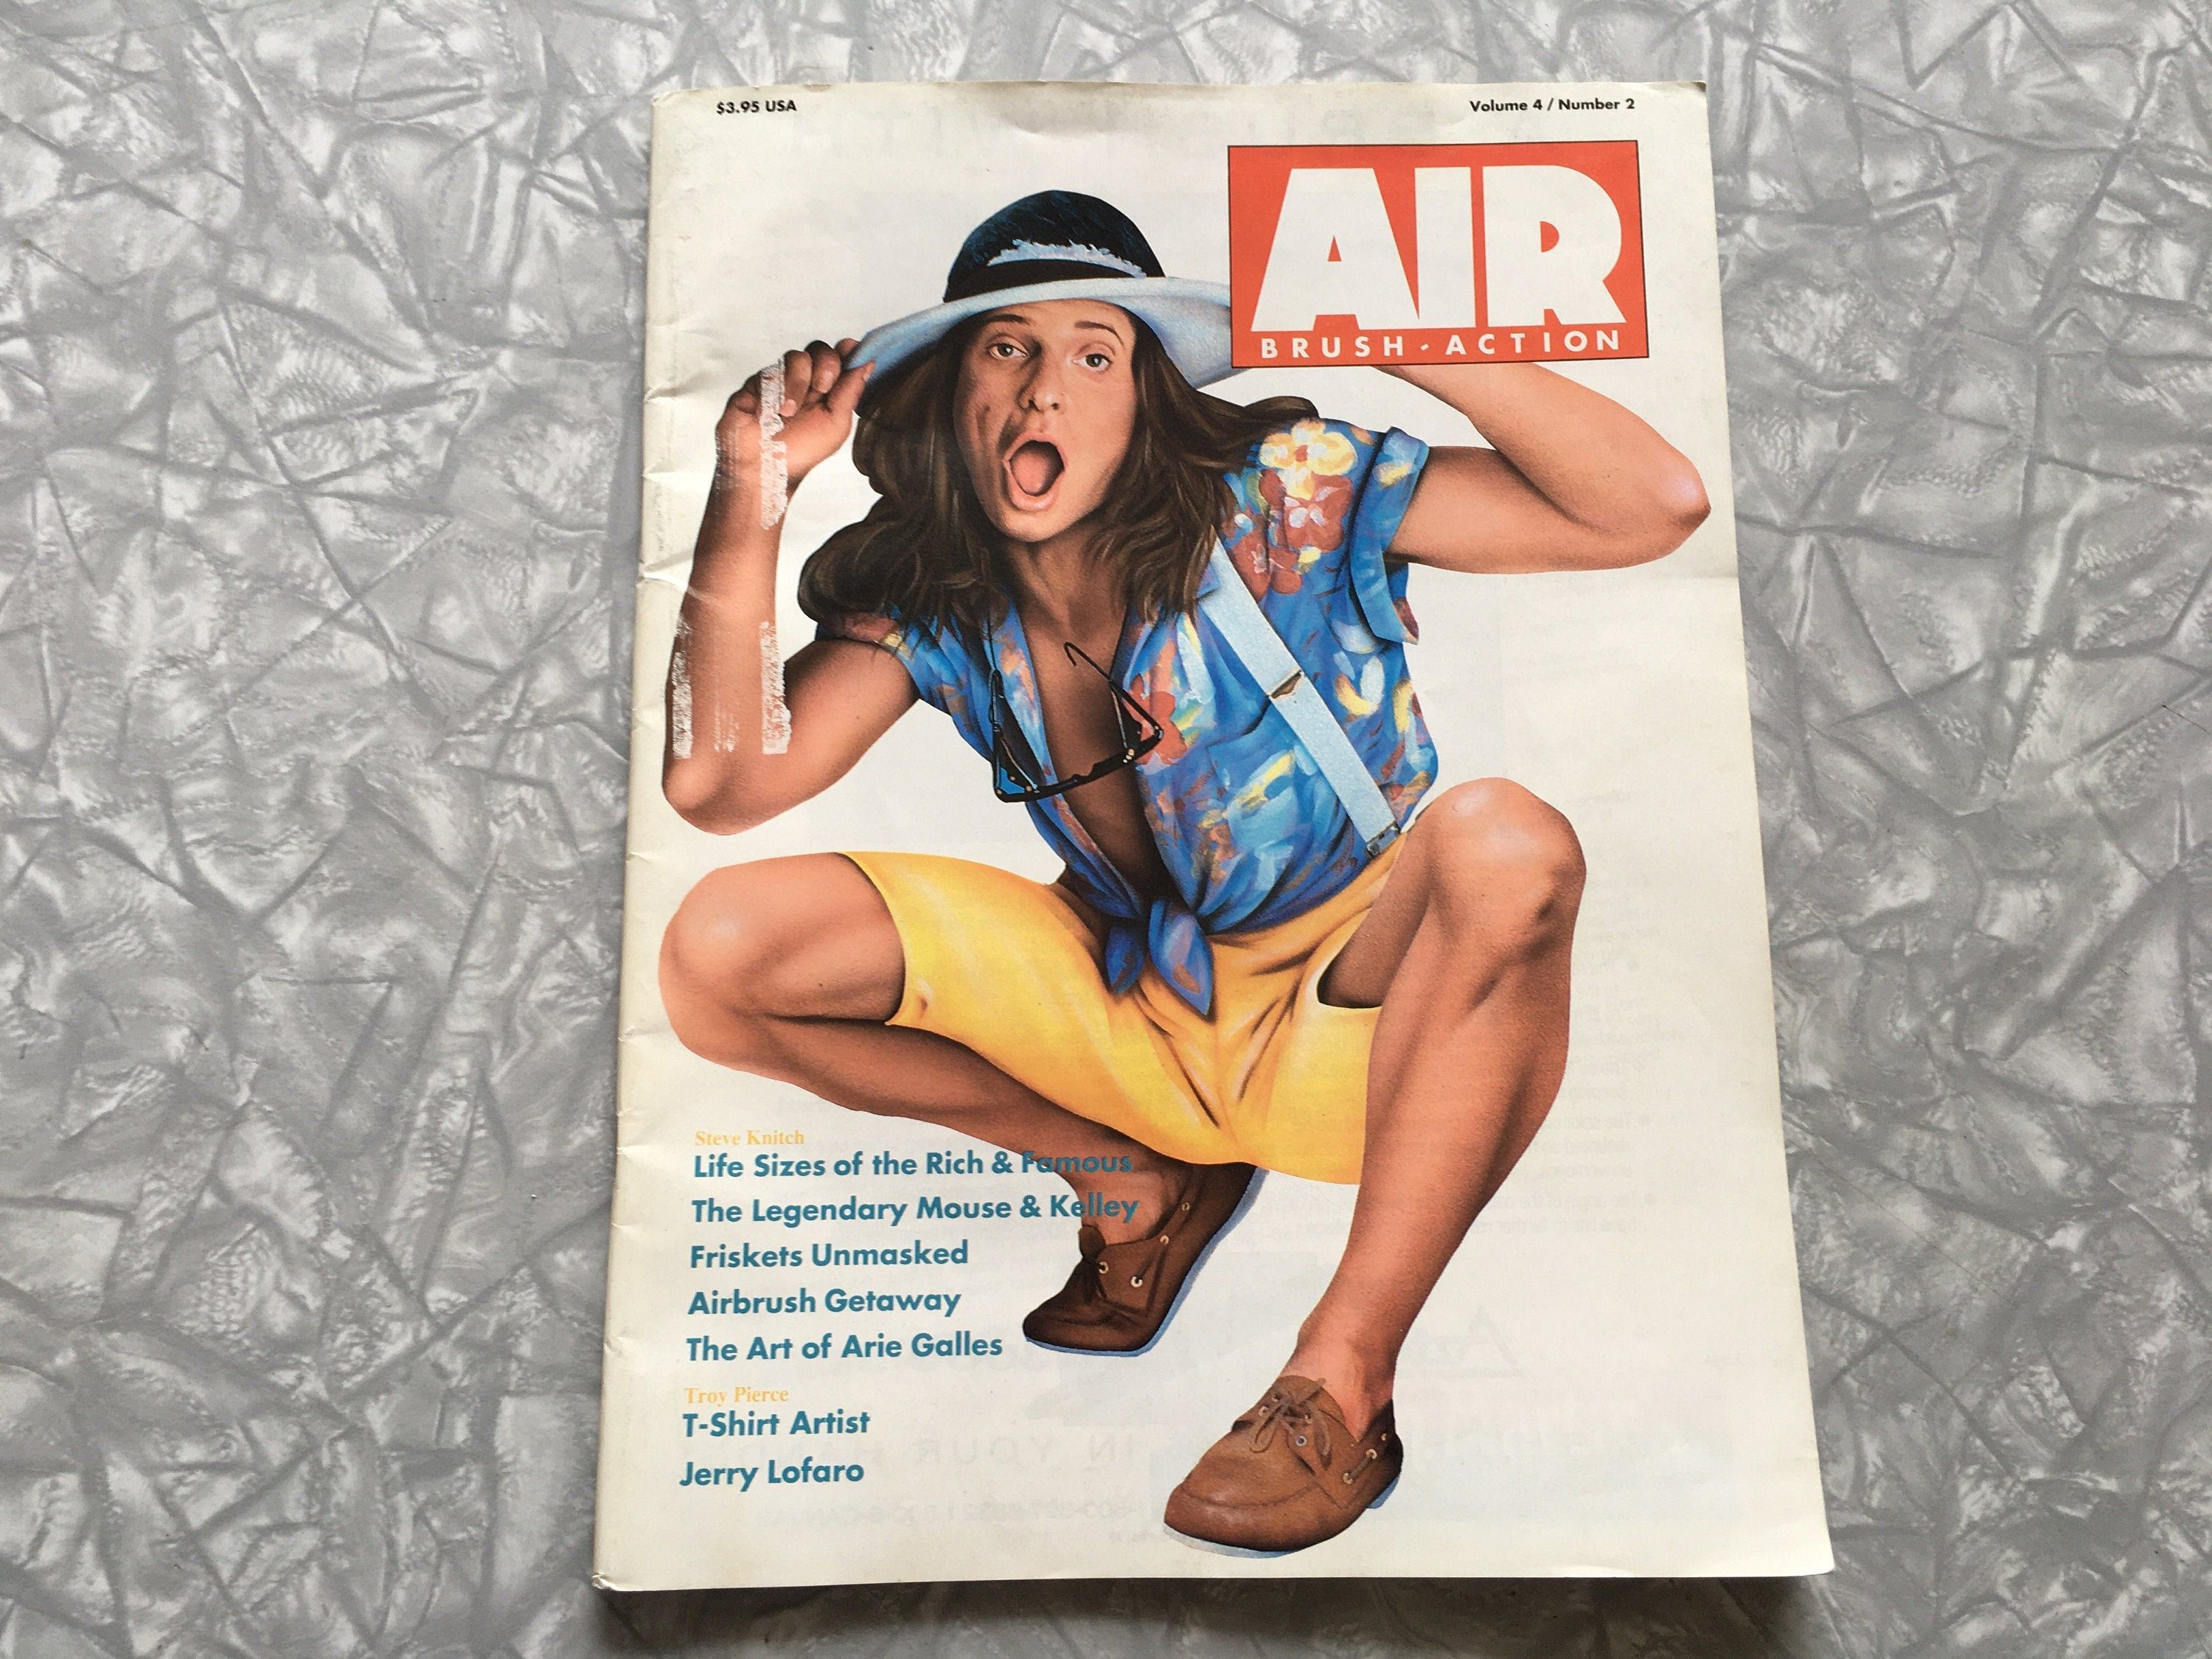 Air Brush Action Magazine Volume 4 Number 2 Sept Oct 1988 Etsy In 2020 David Lee Roth Airbrush Magazine